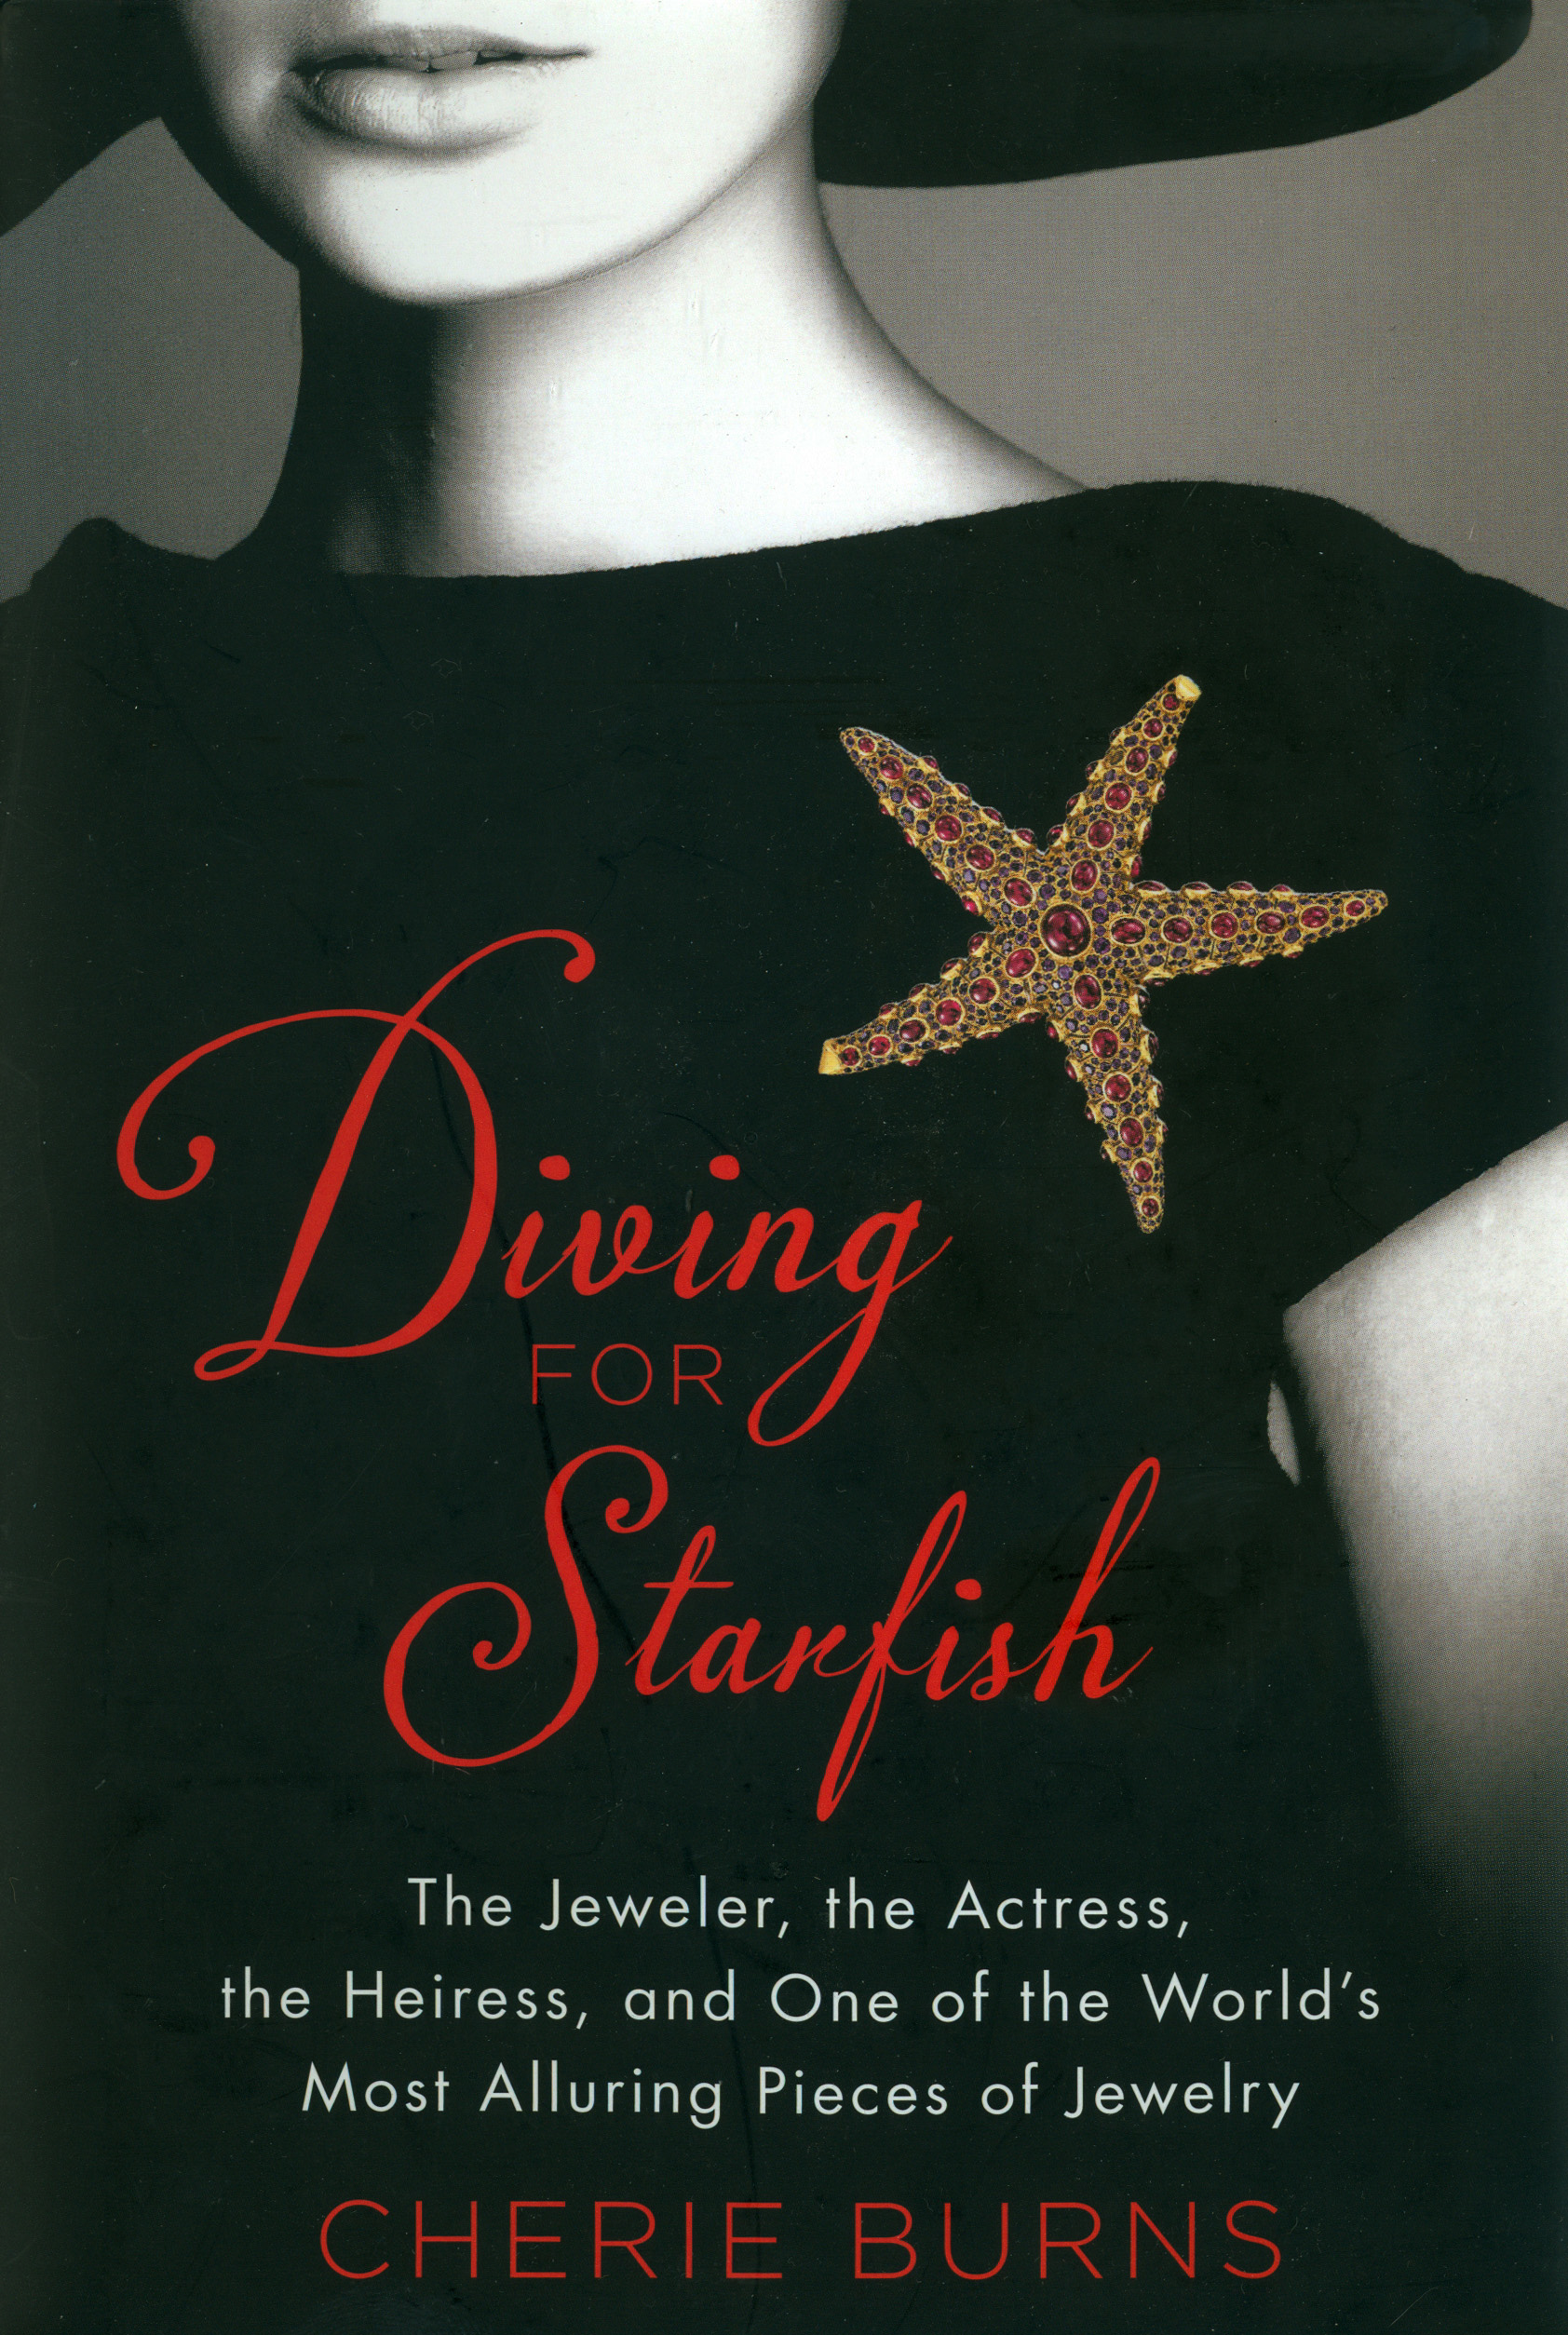 Diving for starfish - The Jeweler, the Actress, the Heiress, and One of the World's Most Alluring Pieces of Jewelry